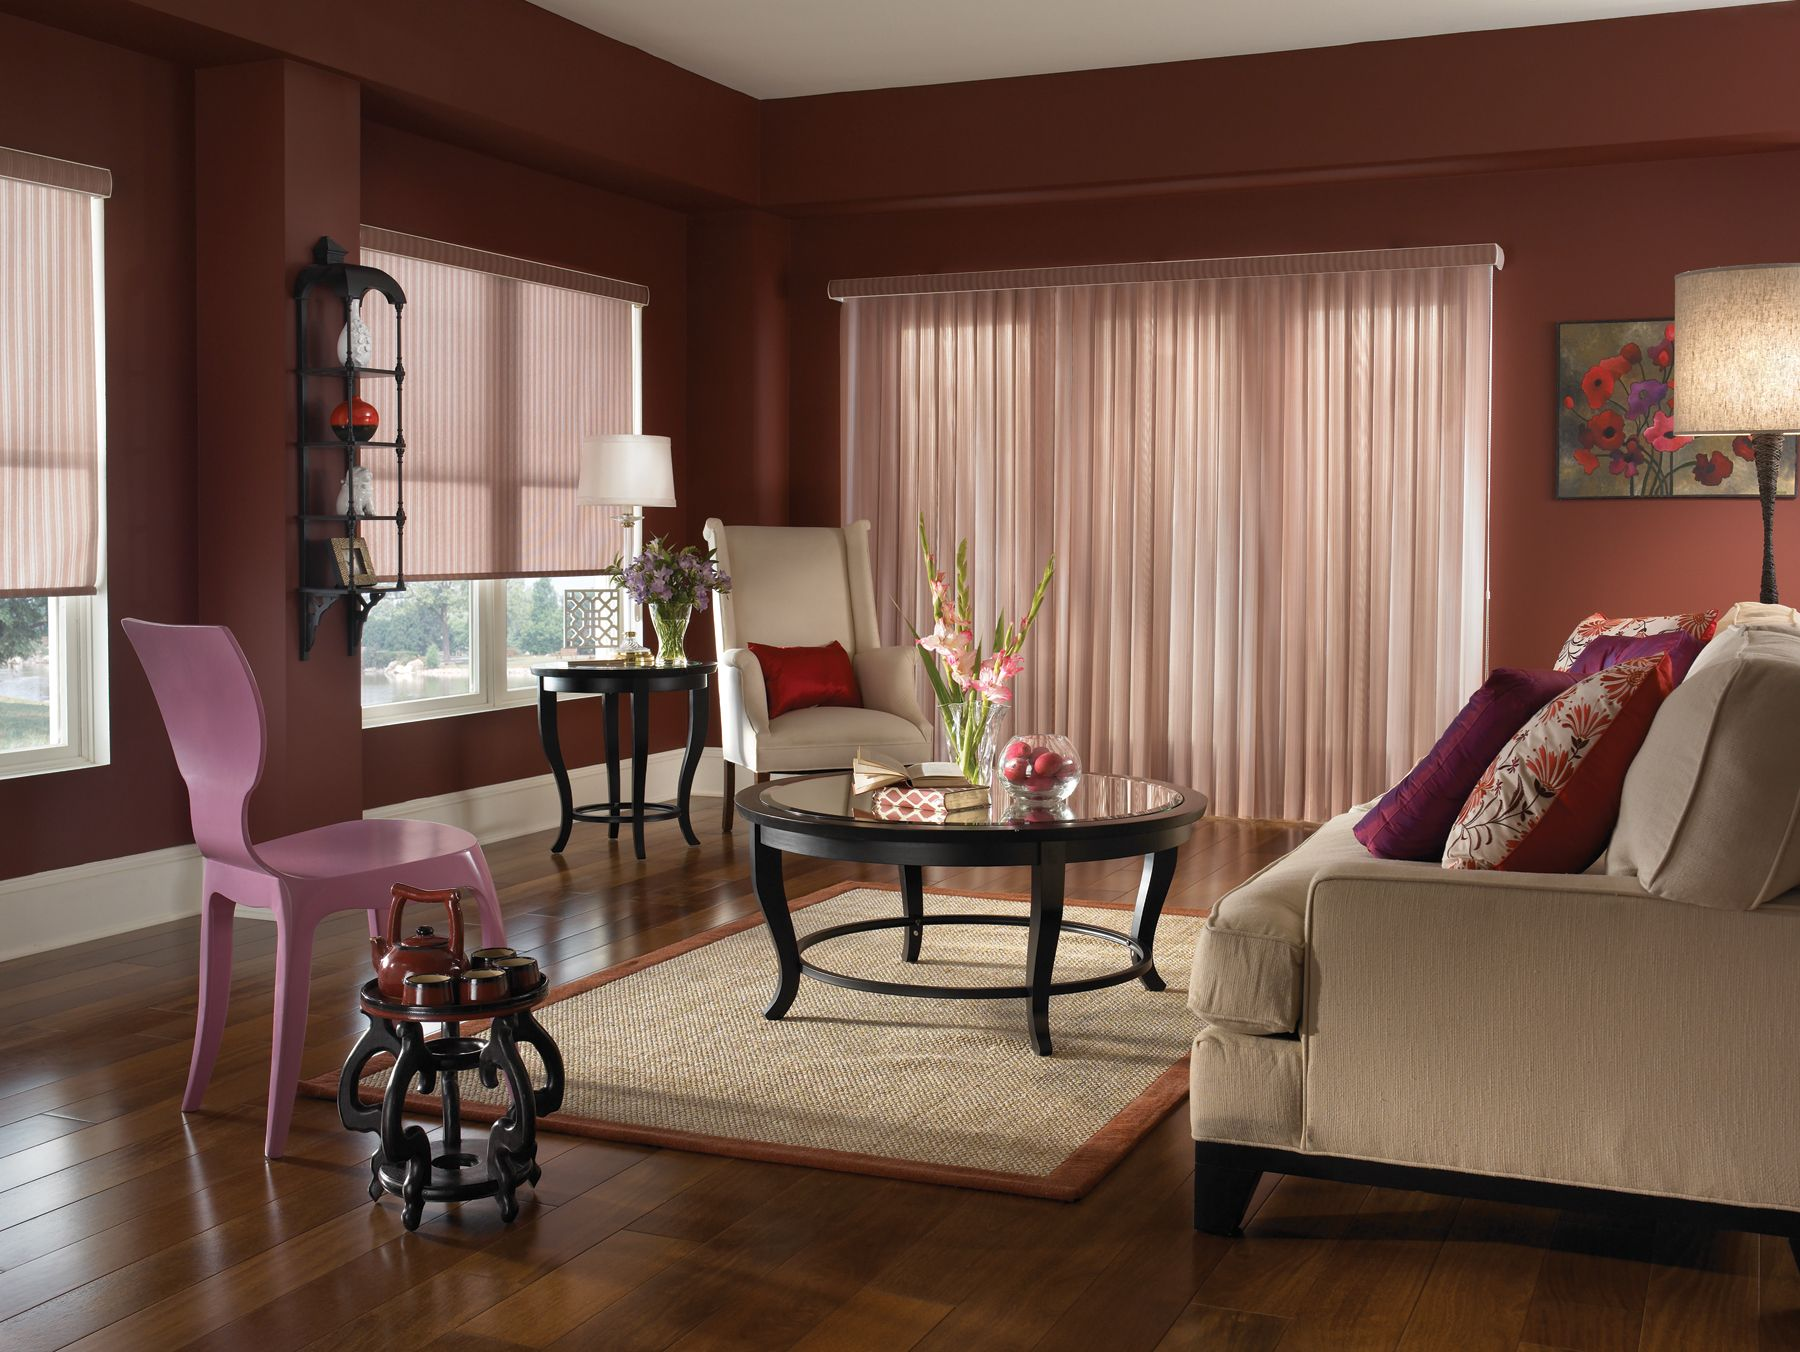 x comfortex for windows to shades regard window track coverings panel size with blinds